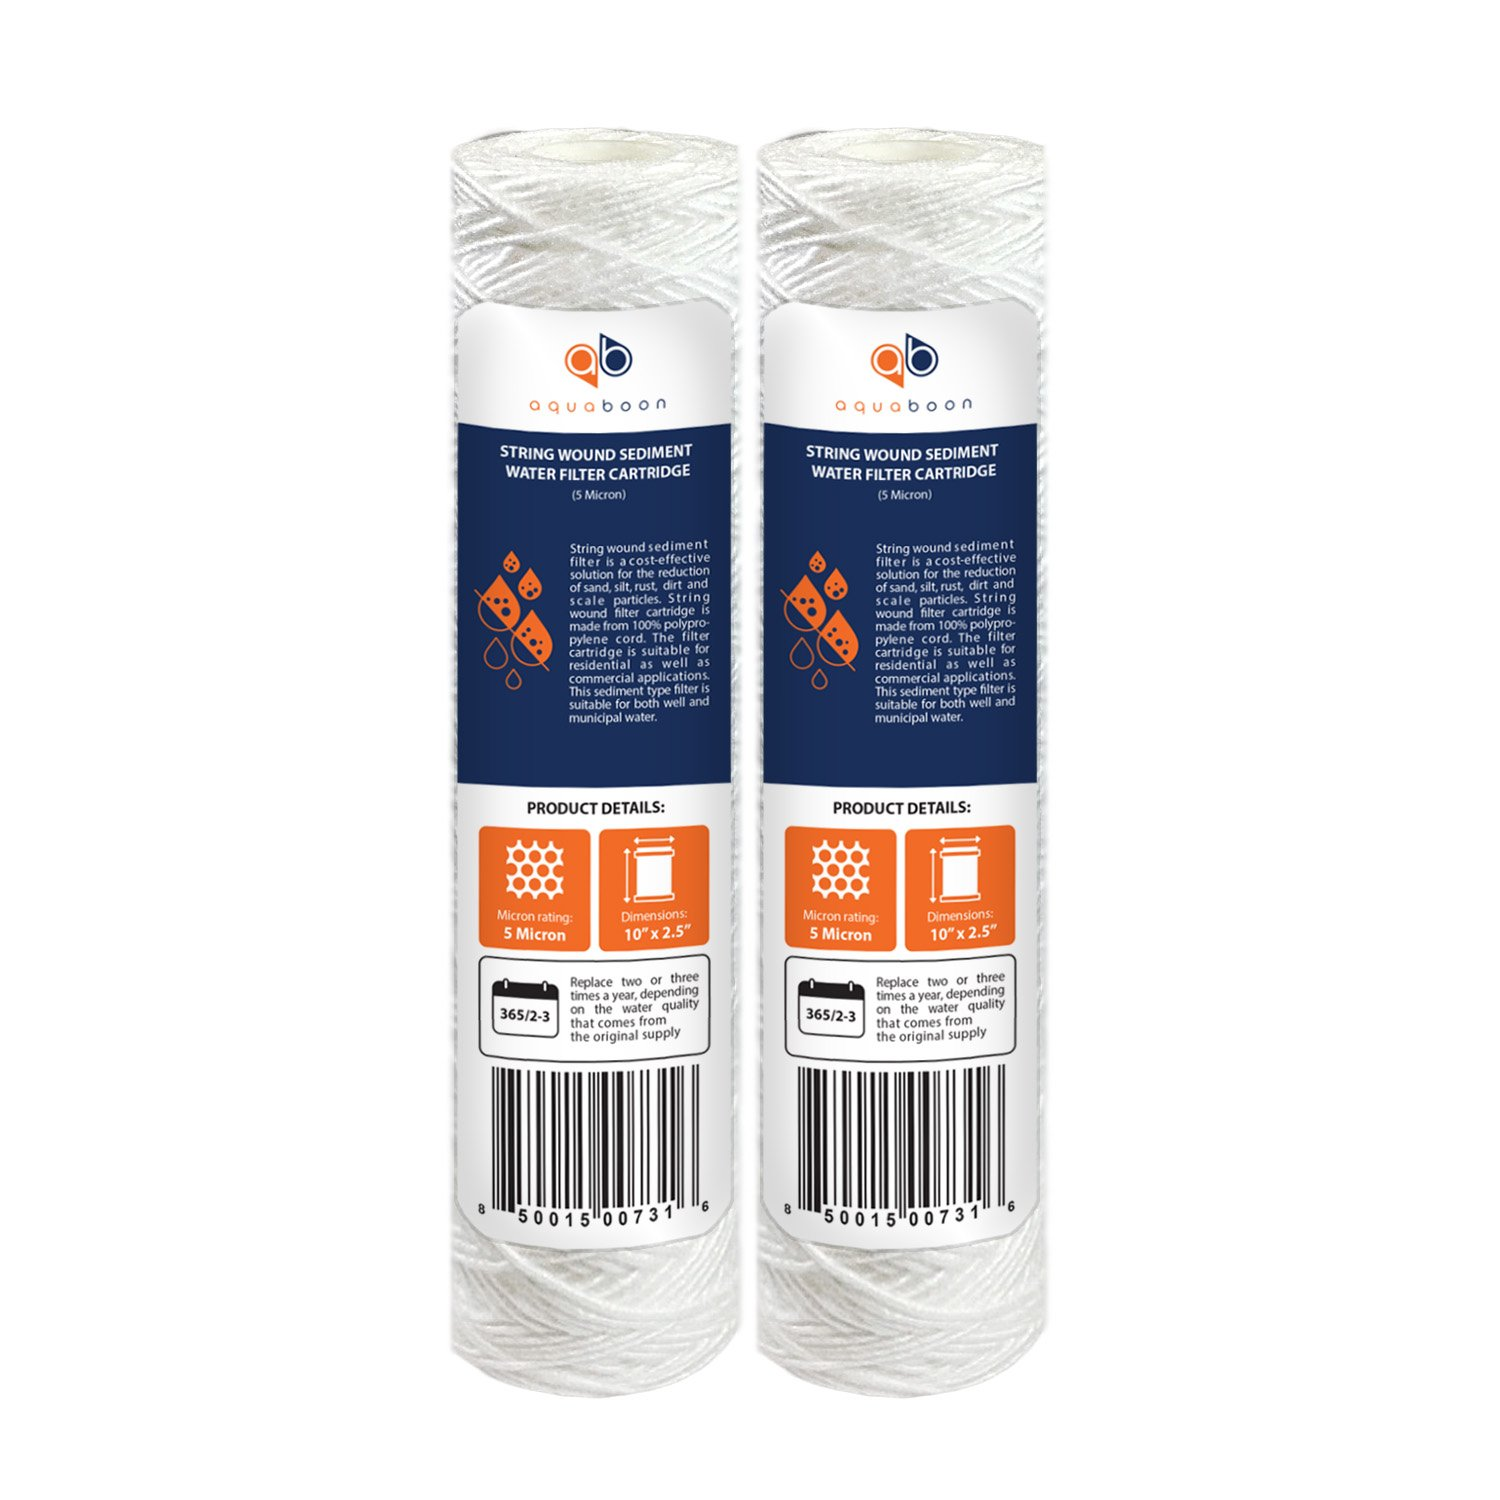 AP110 WFPFC4002 Compatible with WP-5 P5 CW-MF WP-5 Aquaboon 5 Micron 10 x 2.5 String Wound Sediment Water Filter Cartridge CFS110 Universal Replacement for Any 10 inch RO Unit 6-Pack